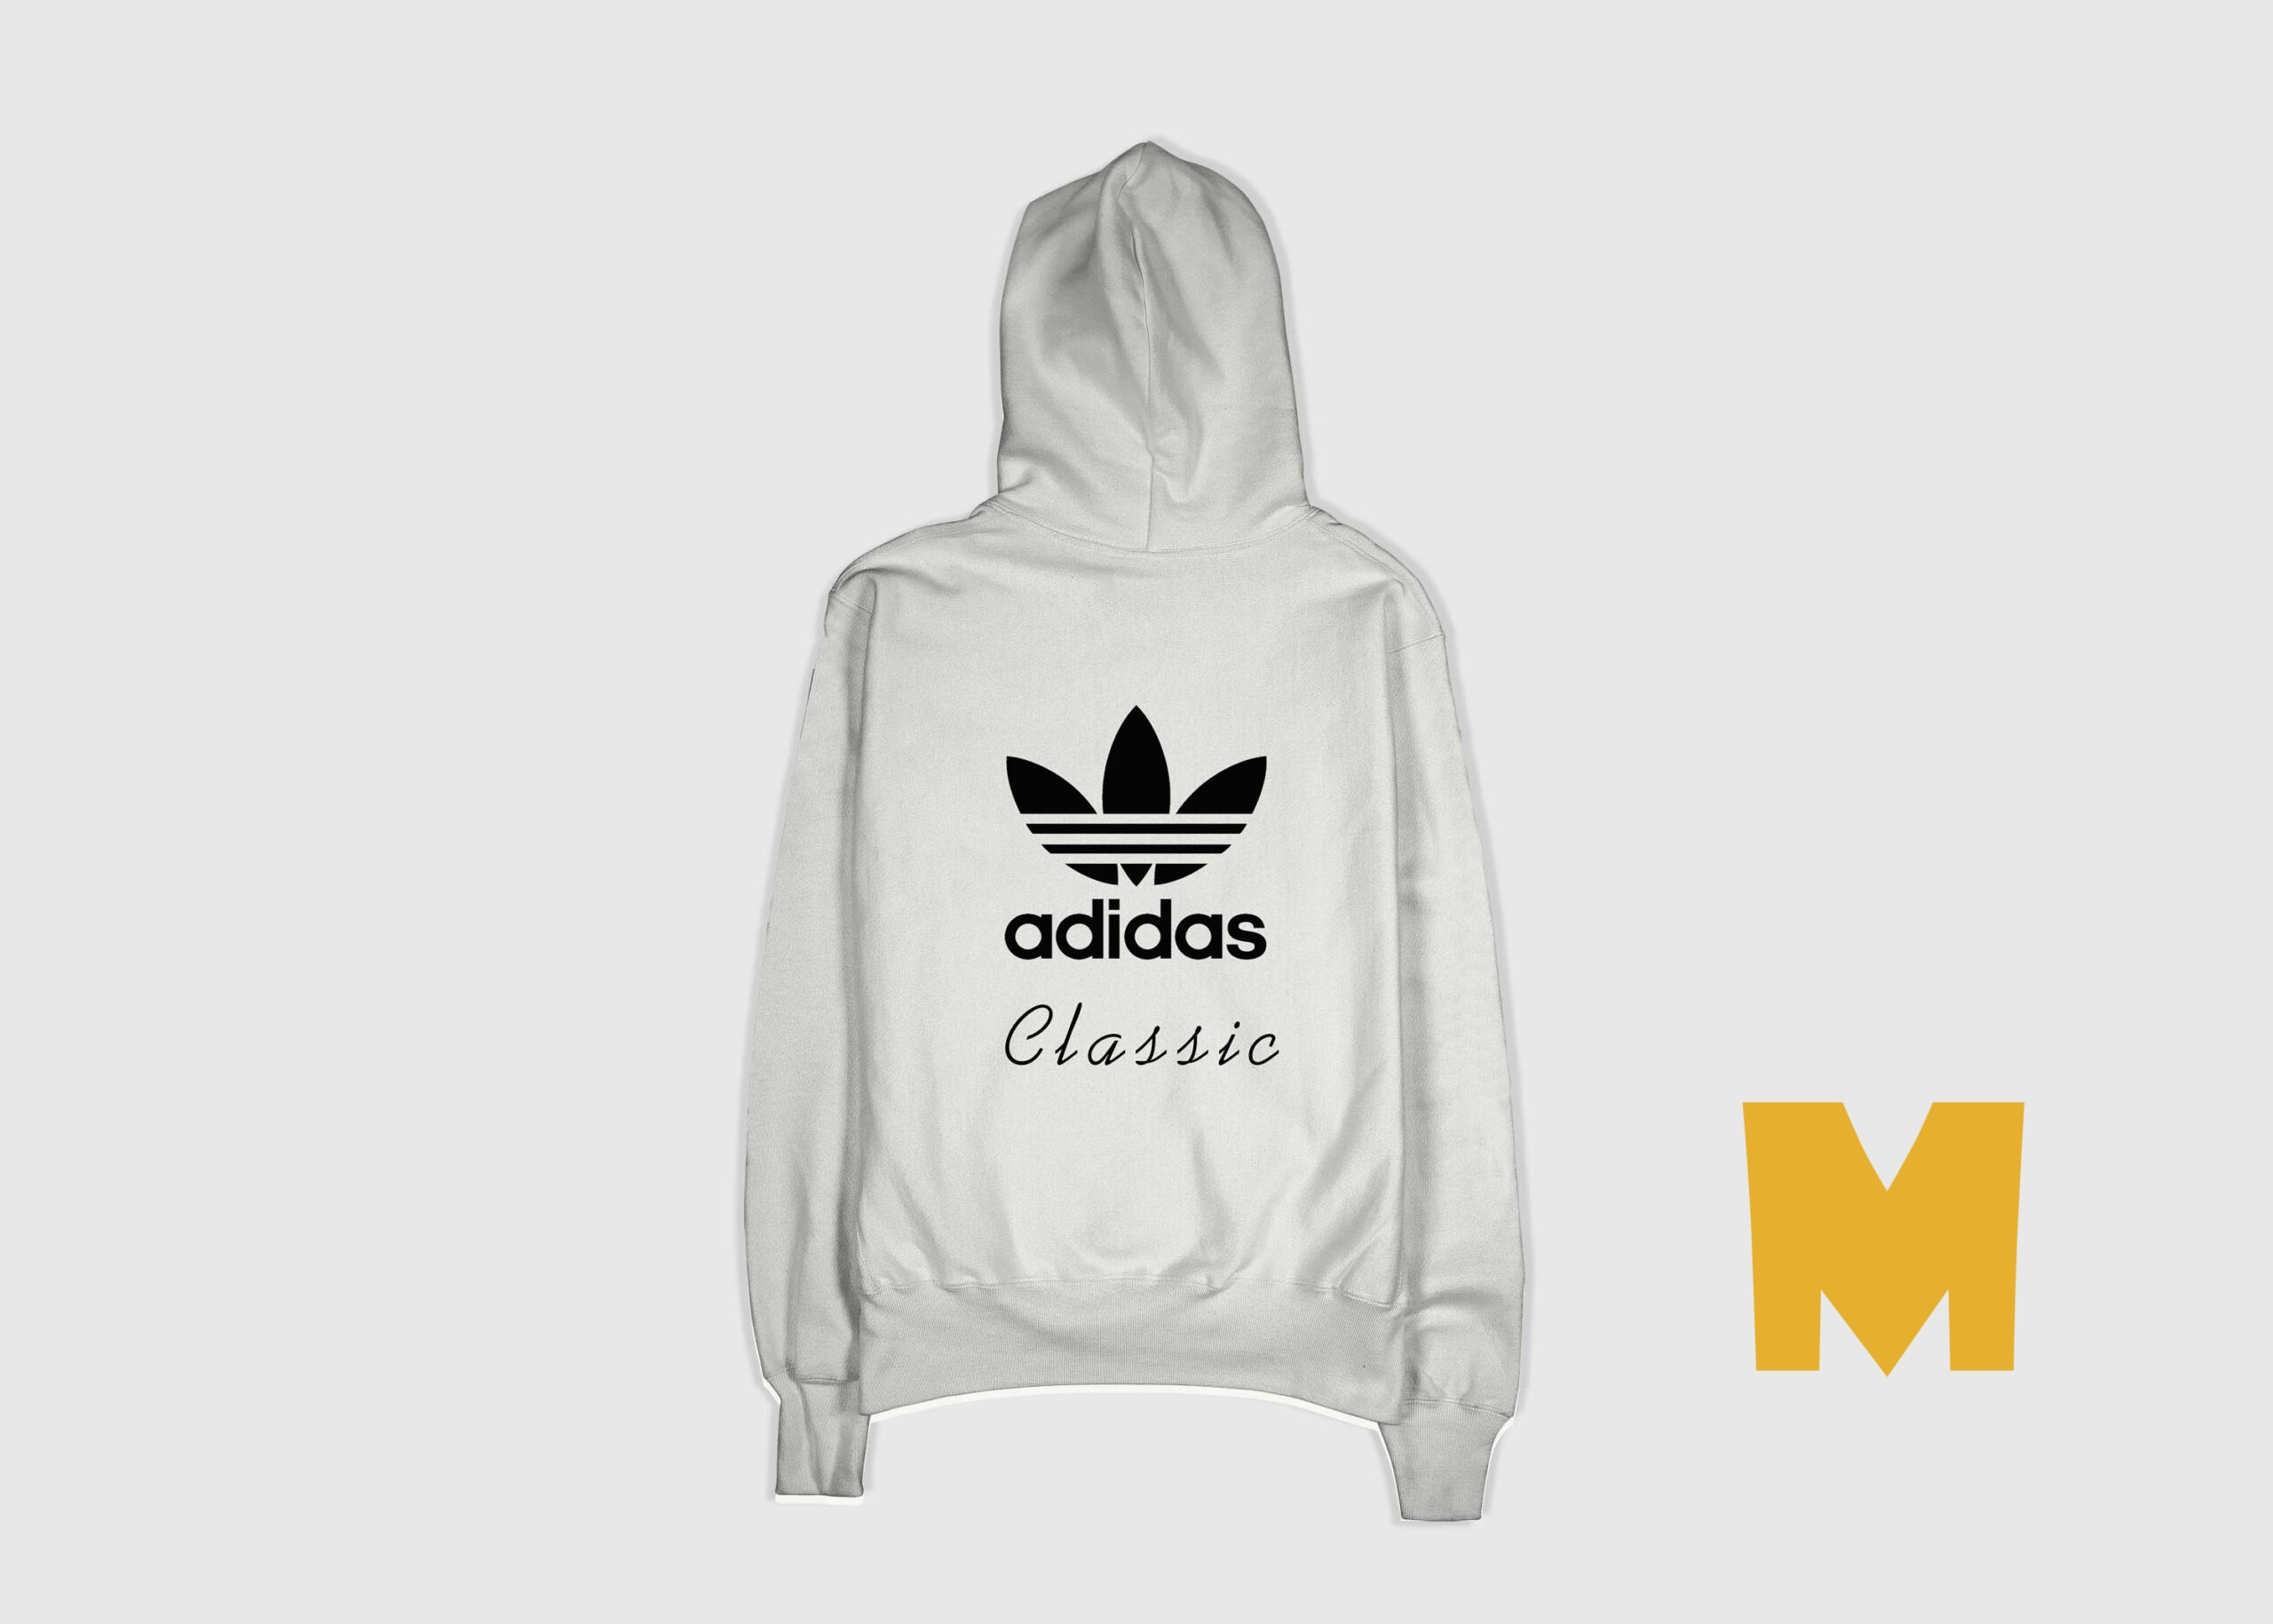 Adidas Back Design Jacket Mockup